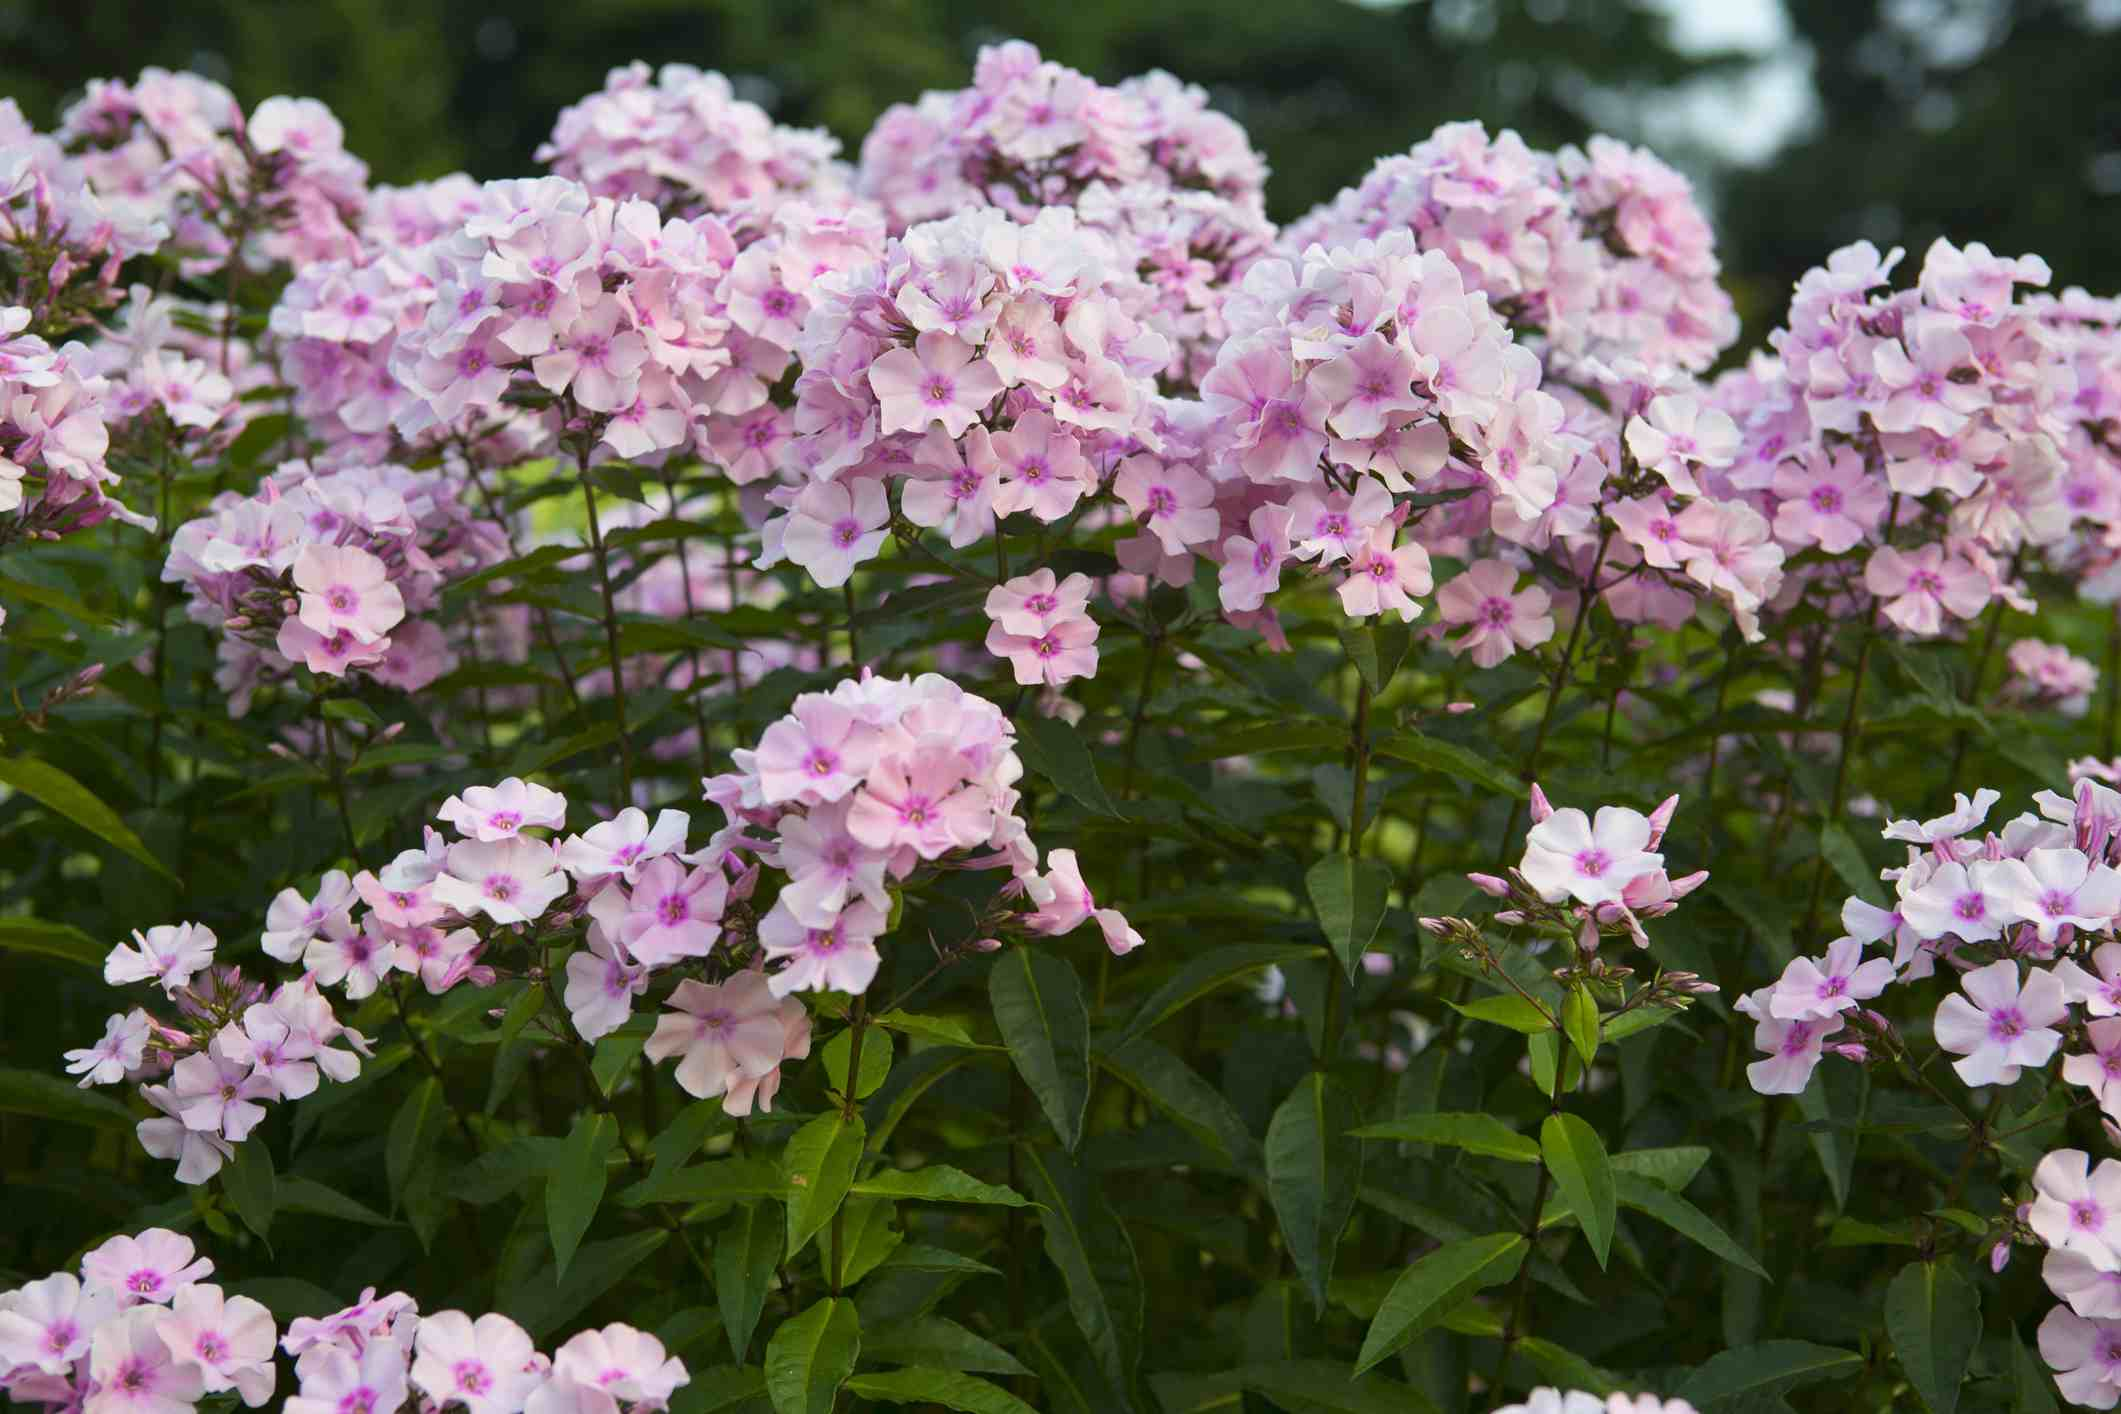 Several plants of 'Rosa Pastell' tall garden phlox growing together.